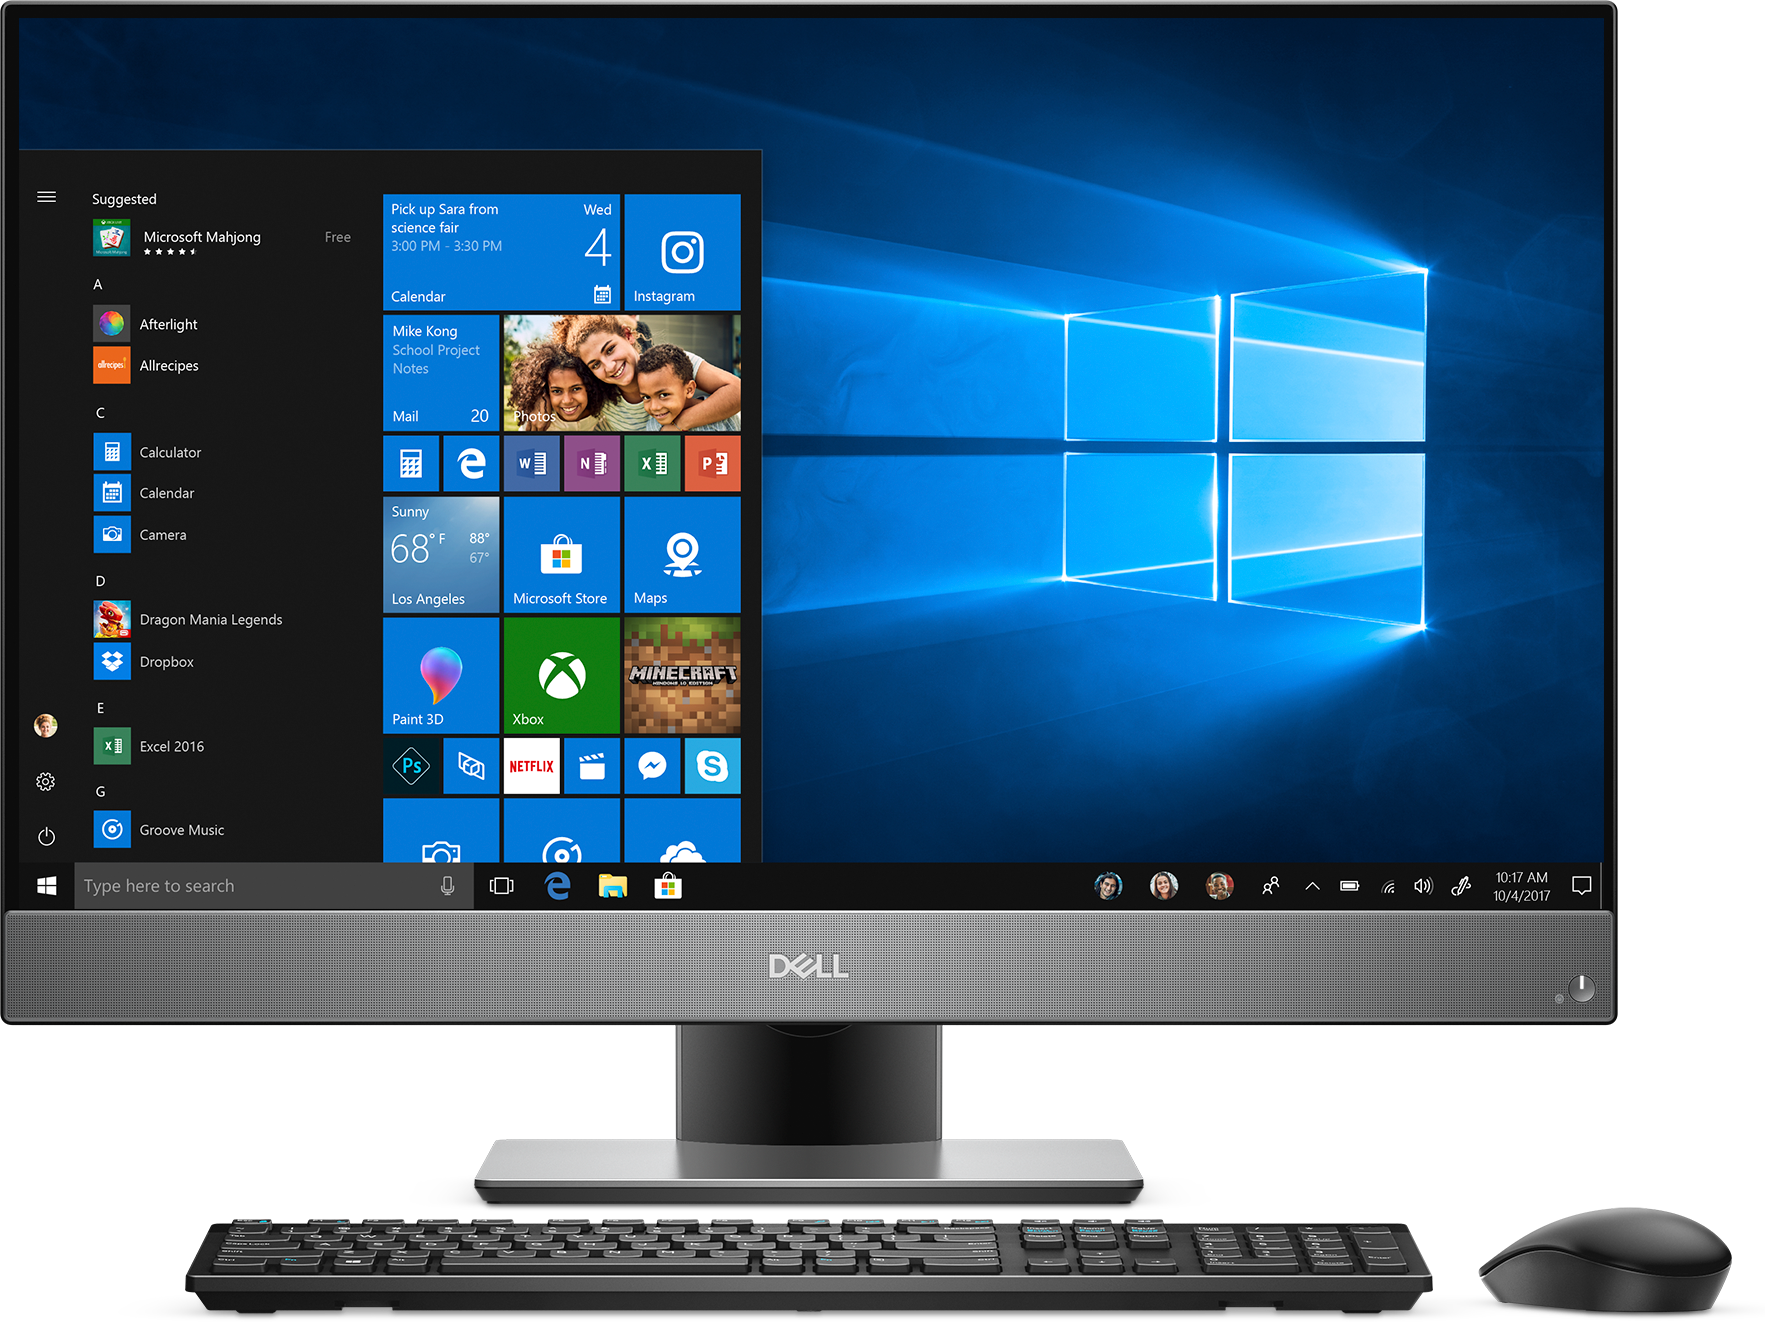 Frontal view of Dell Inspiron 7777 All-in-One including keyboard and mouse